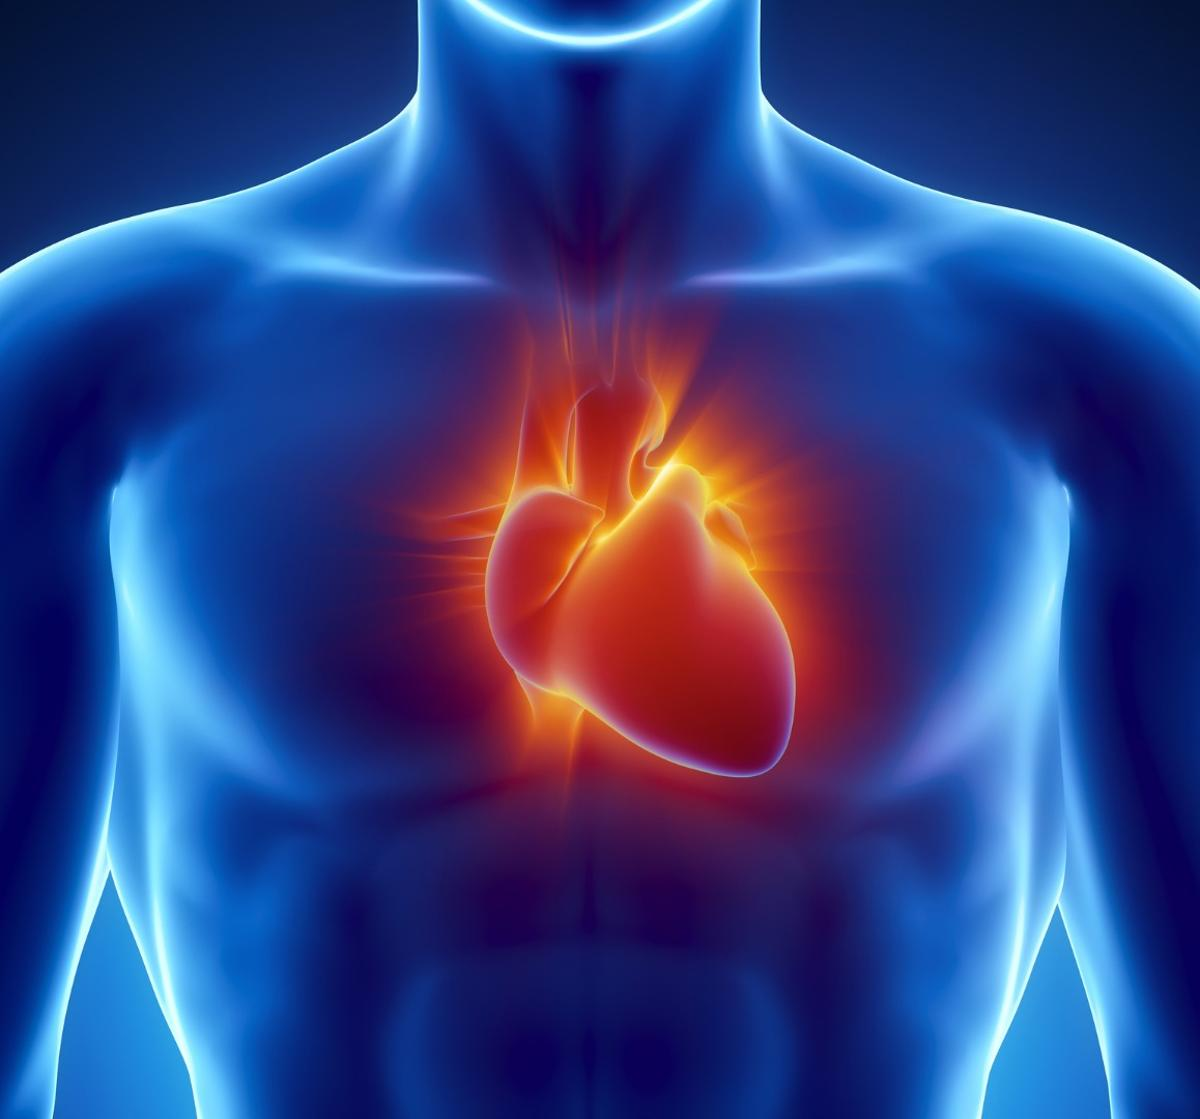 Researchers have developed a new CRISPRtechnique that can correct defects in heart tissue caused by DMD